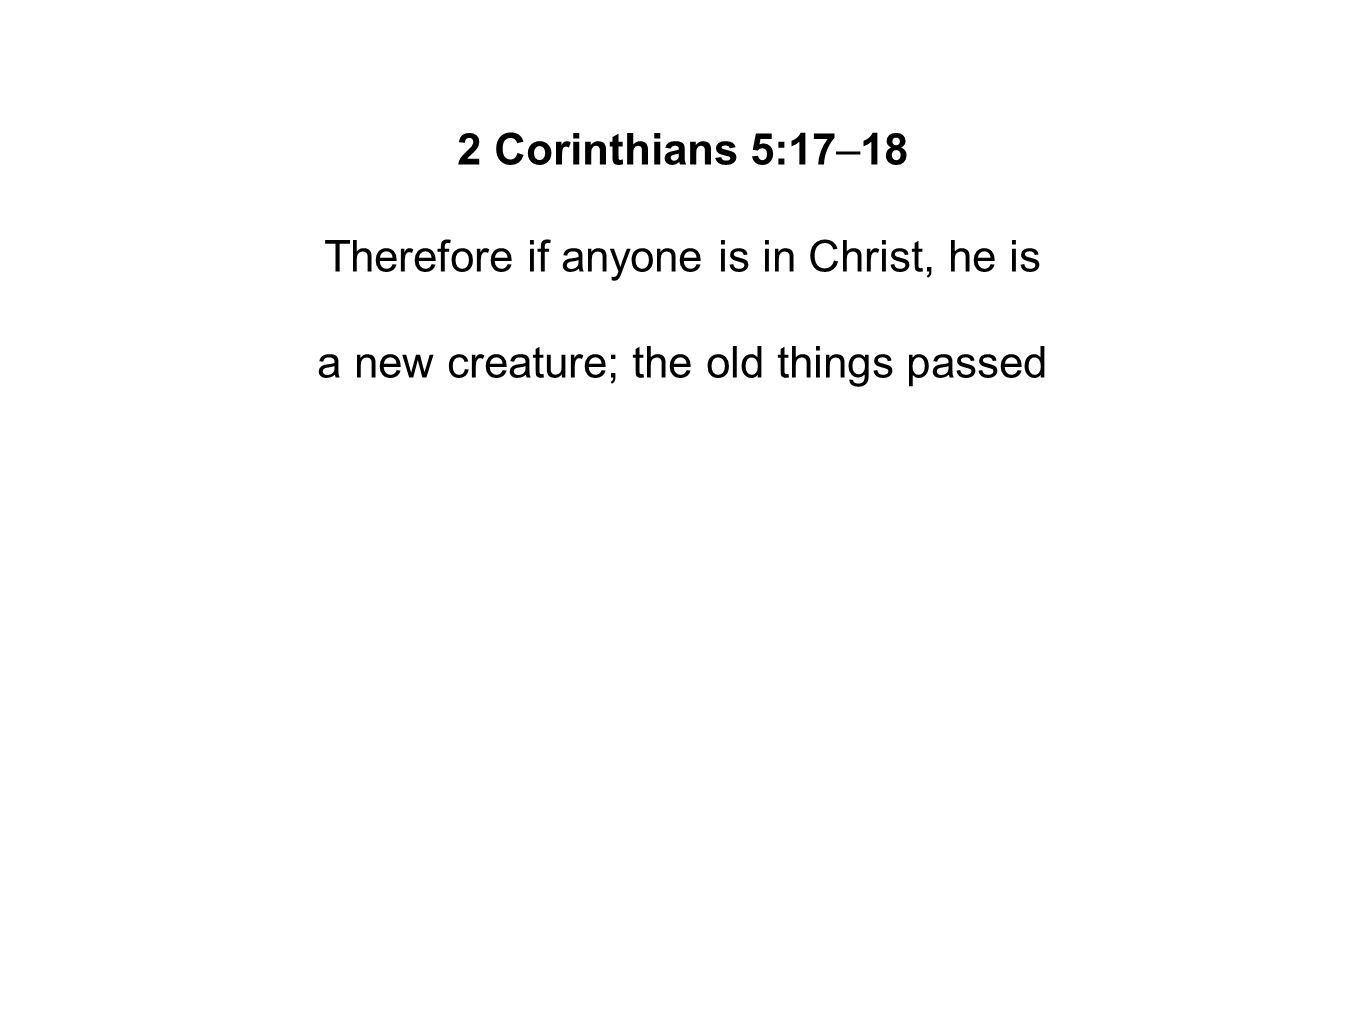 2 Corinthians 5:17–18 Therefore if anyone is in Christ, he is a new creature; the old things passed